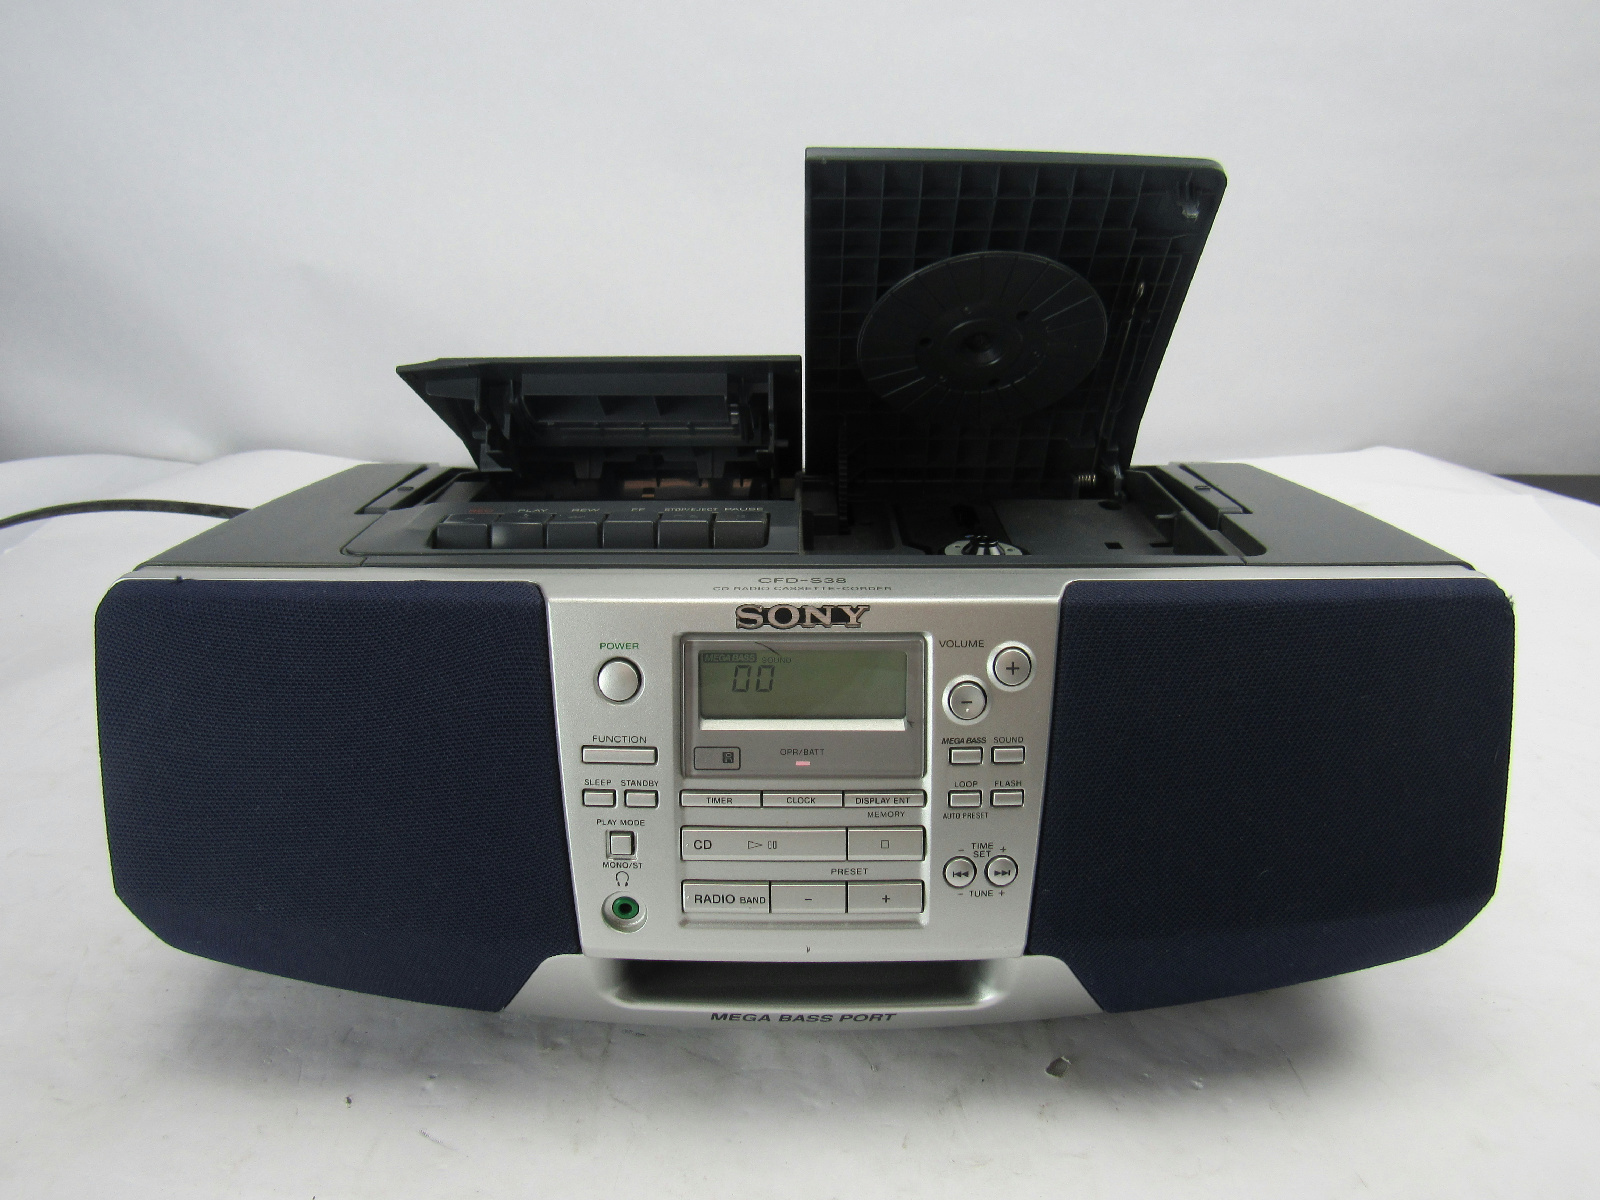 sony cfd s38 cd radio boombox. Black Bedroom Furniture Sets. Home Design Ideas